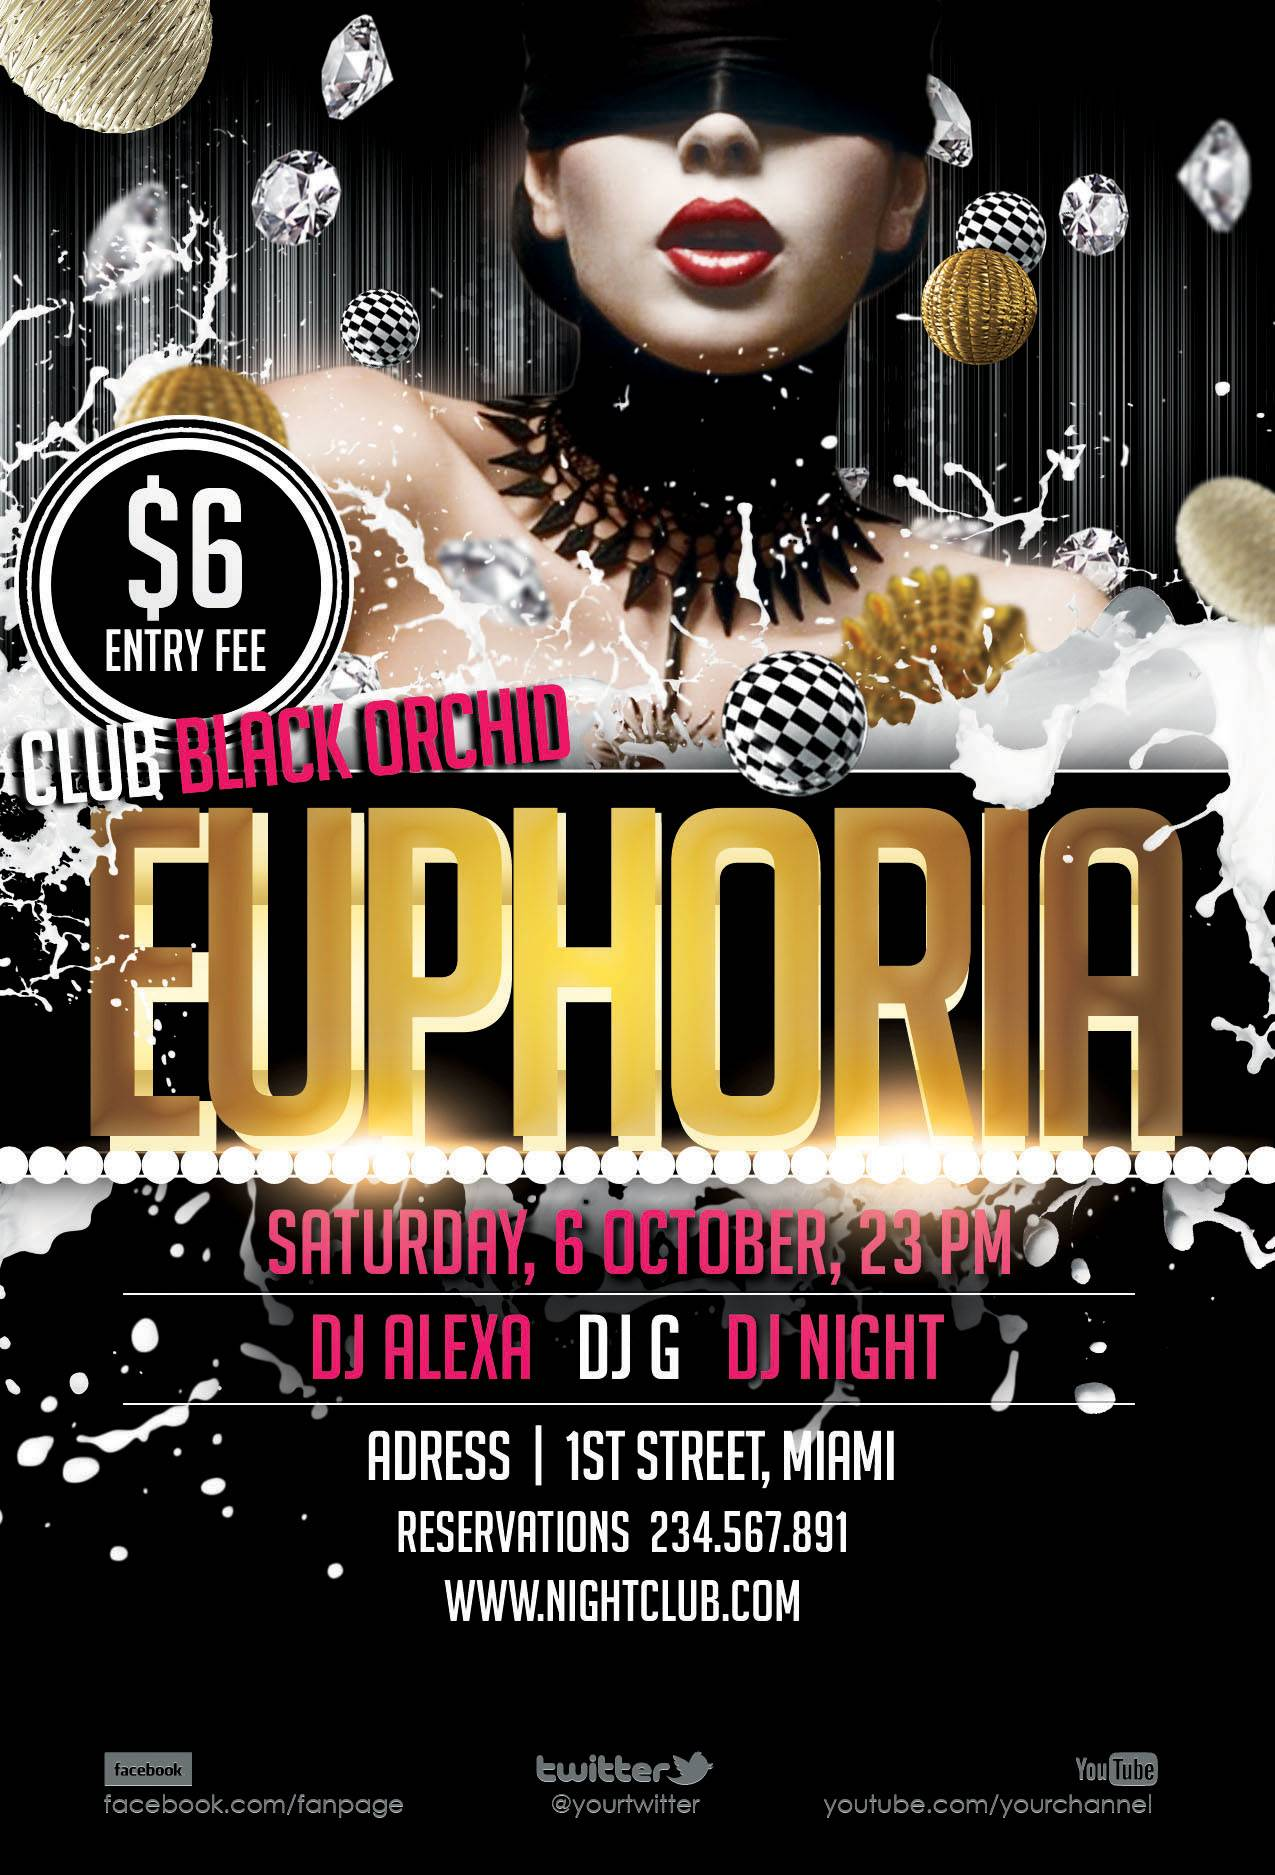 Nightclub Flyer Templates Photoshop